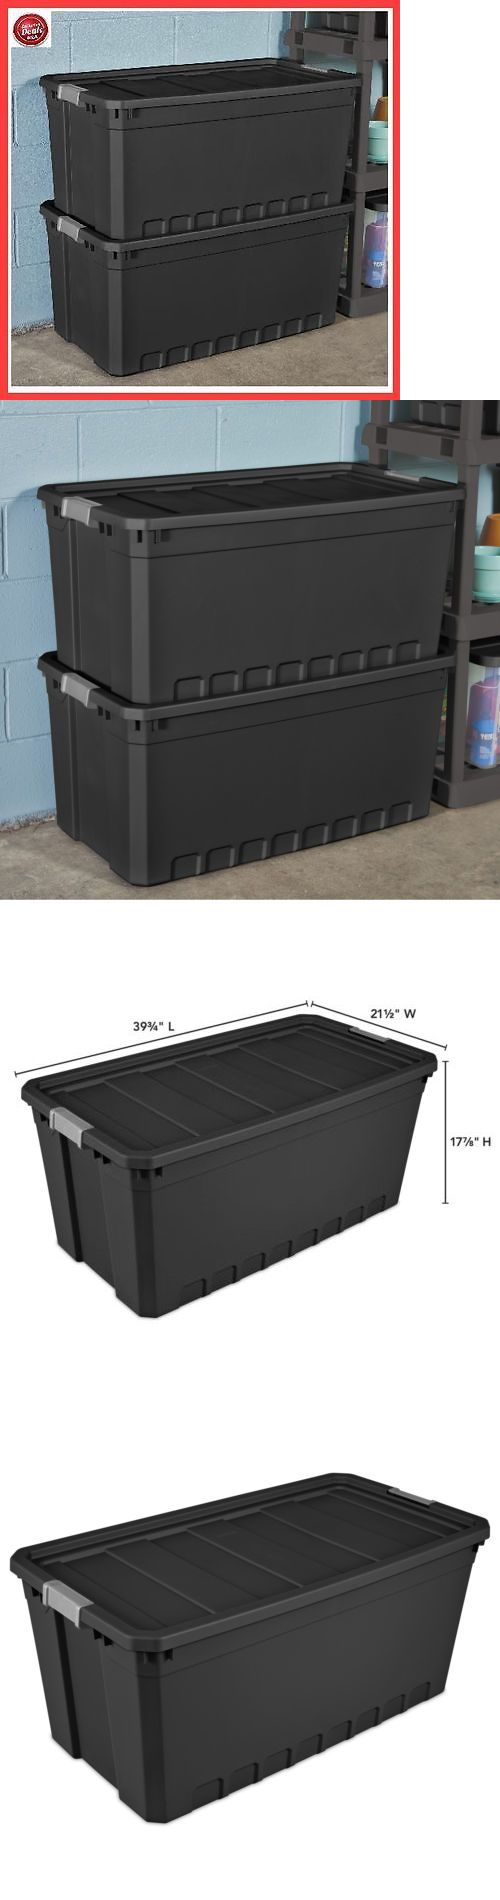 Storage Boxes 159897: 3Pc Plastic Storage Containers Large Black 50 Gallon Stacking Bin Box Tote W Lid -> BUY IT NOW ONLY: $62.02 on eBay!